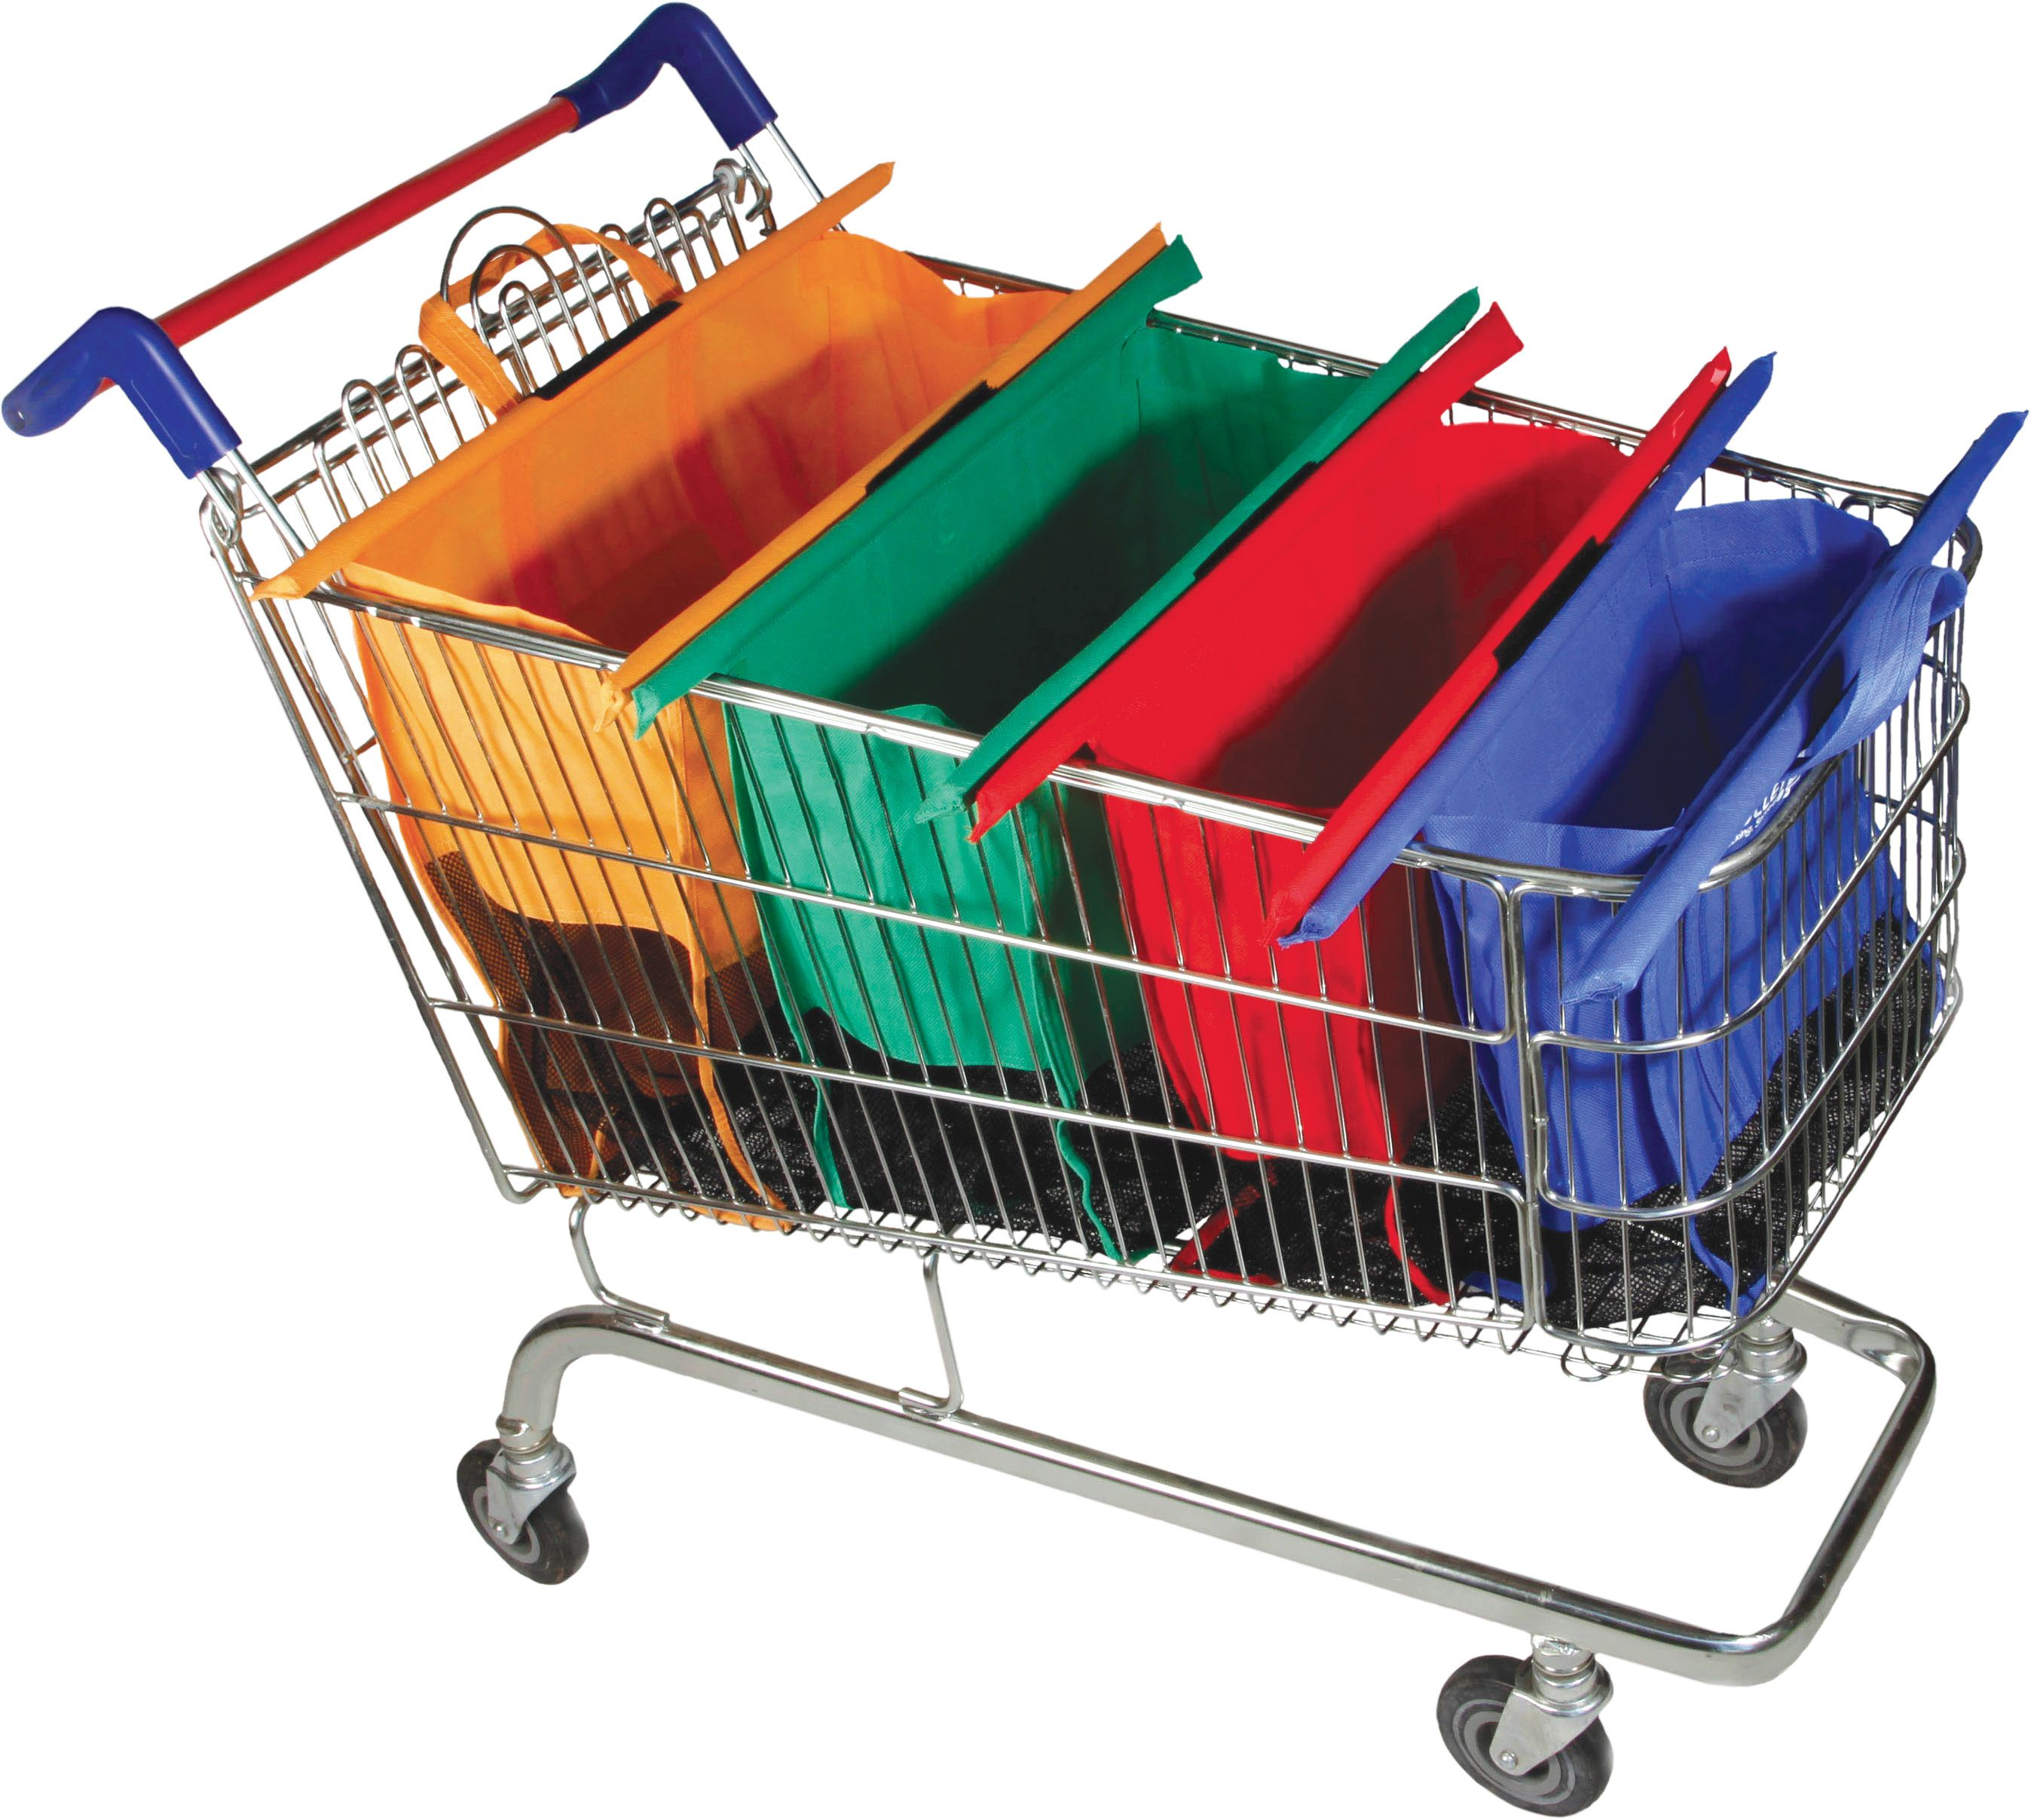 shopping trolley bags | Trolley Bags (Set of 4 bags) | Stuff to ...